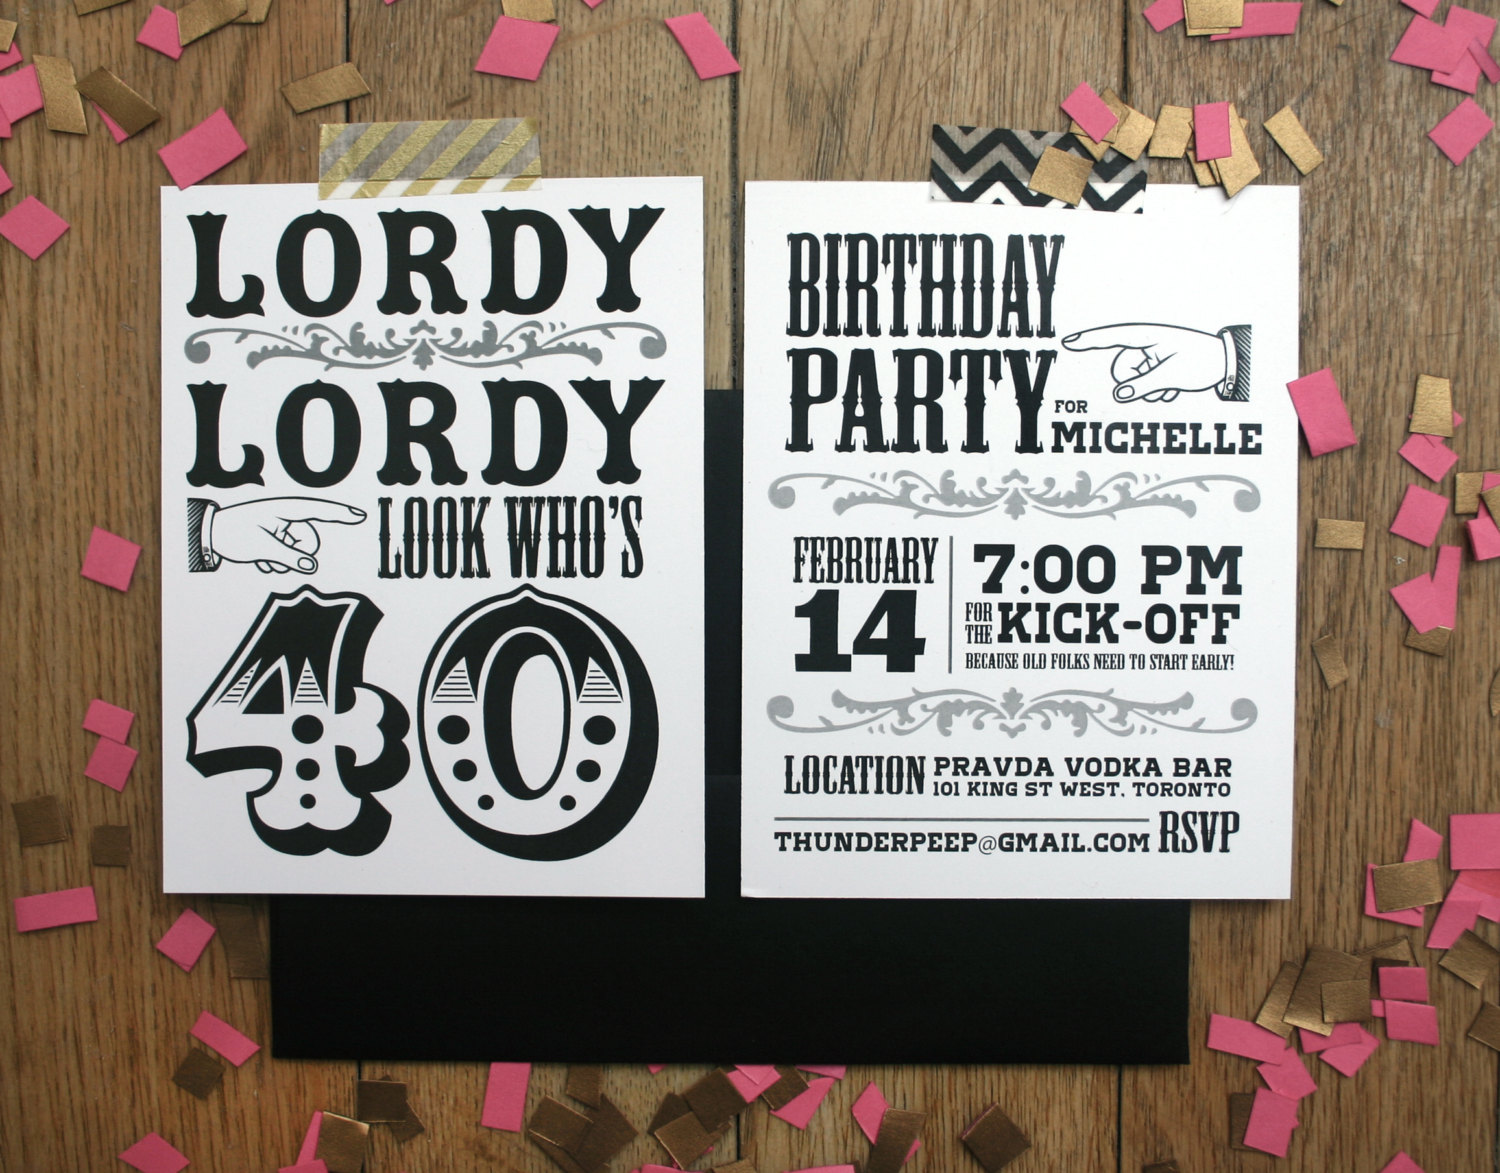 40 year old birthday invitation ideas ; 40th-birthday-party-invitations-with-some-ornaments-of-easy-on-the-eye-variation-on-your-Birthday-Invitation-Cards-invitation-card-design-20